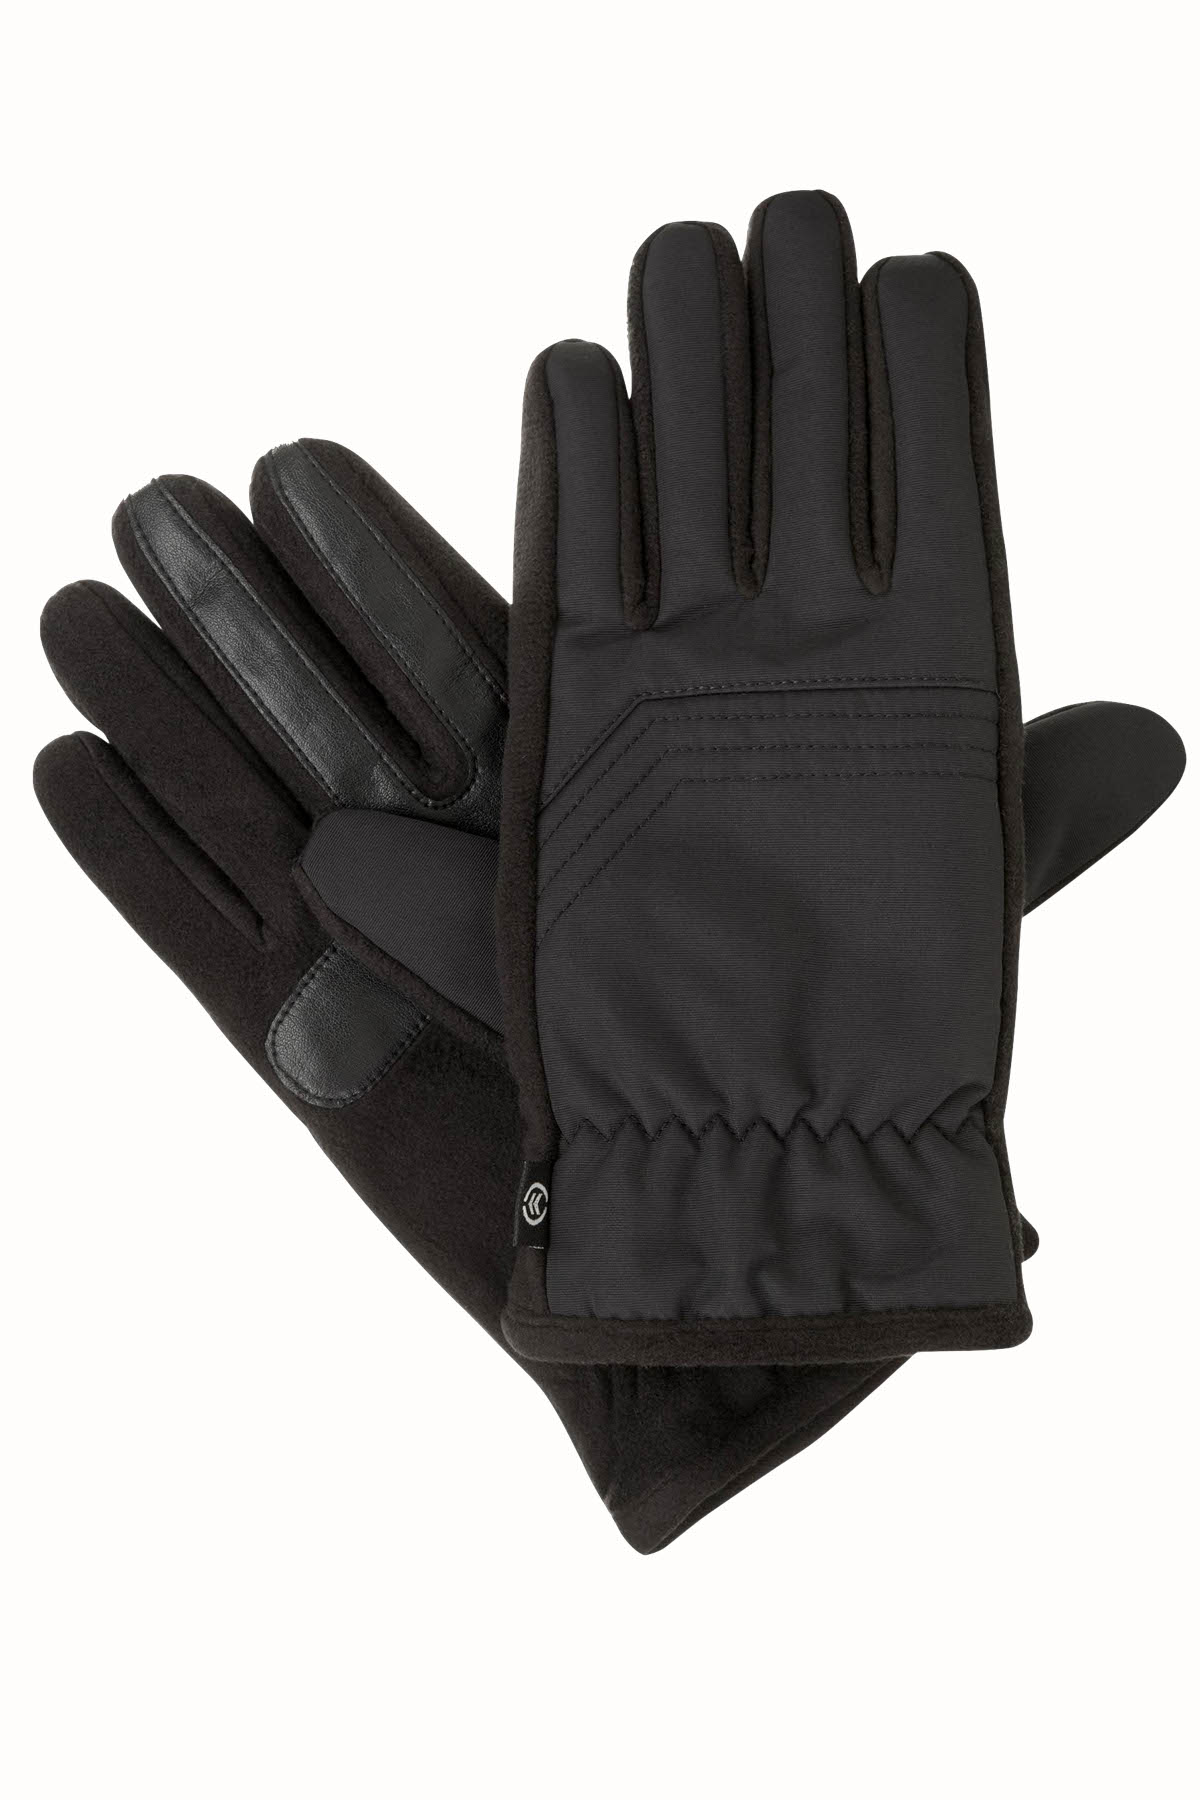 Isotoner Signature Black THERMAflex™ CORE SmarTouch Touchscreen Gloves - Large